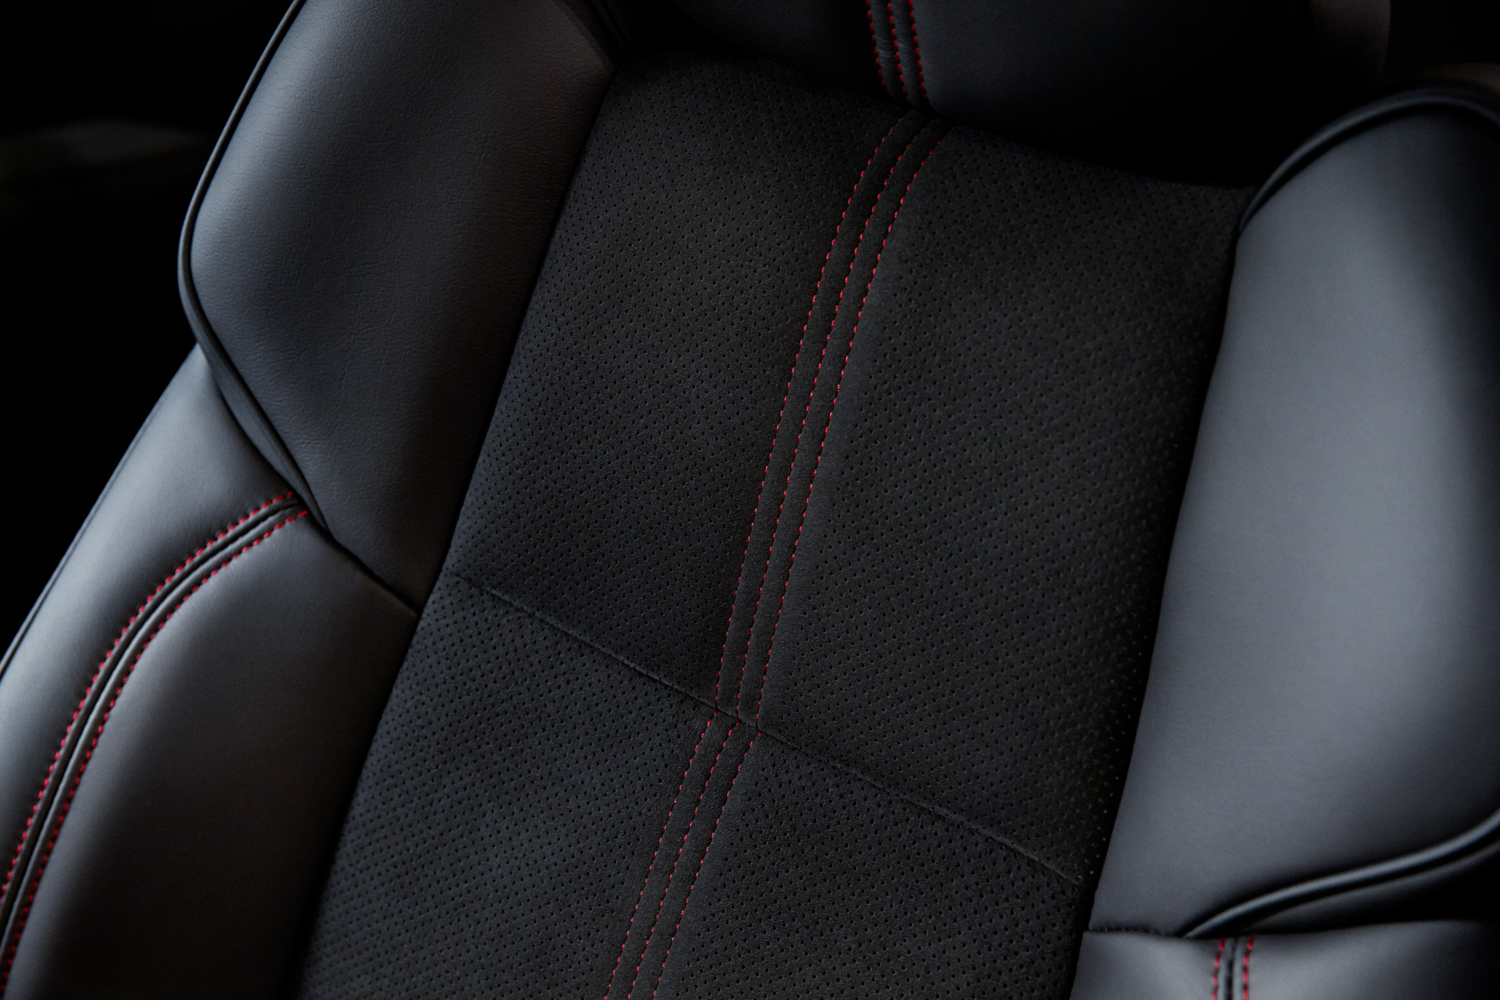 2020 Acura TLX PMC Edition seat detail